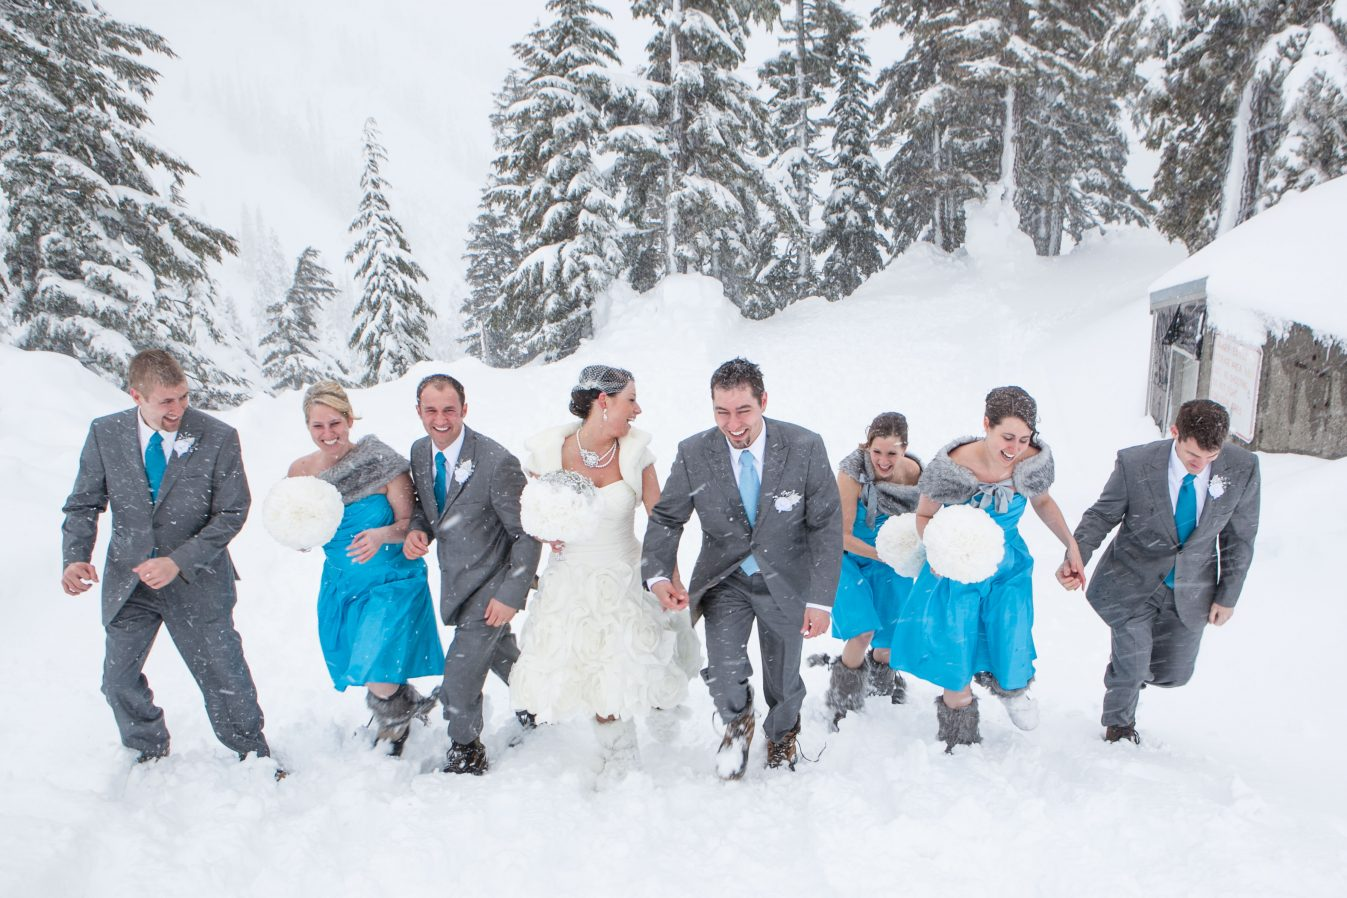 winter-wedding-snow-wedding-party-blue-bridesmaids-dresses